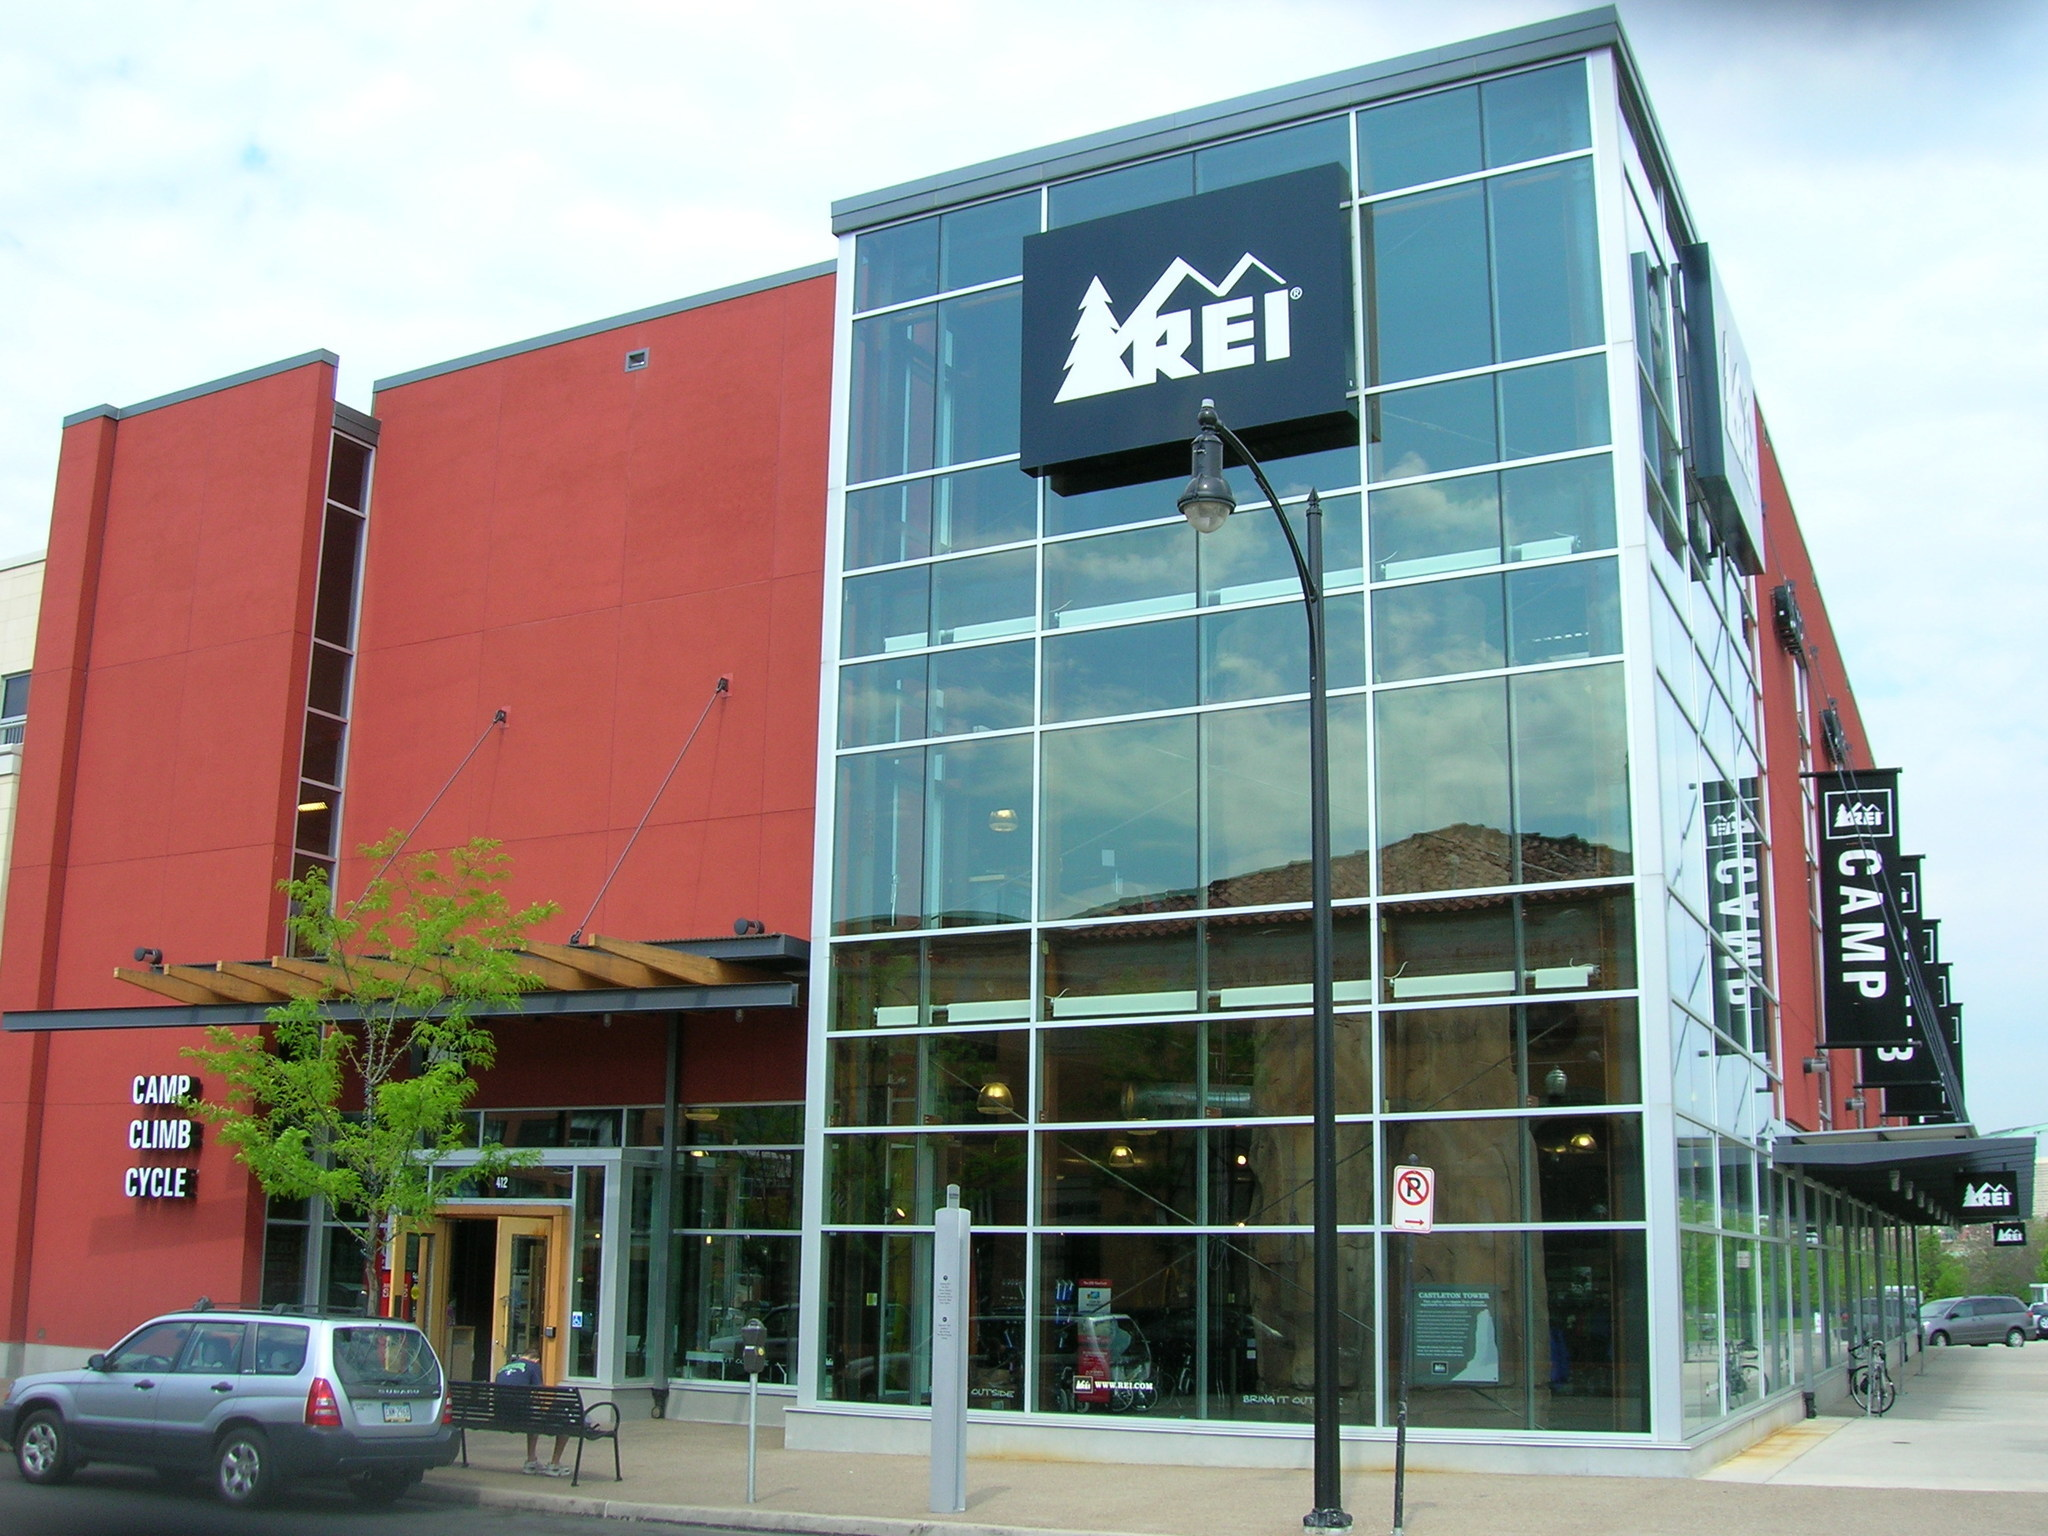 Stand Up Paddle Boards >> Outdoor retailer REI to open first Hampton Roads store at Pembroke Mall - Daily Press